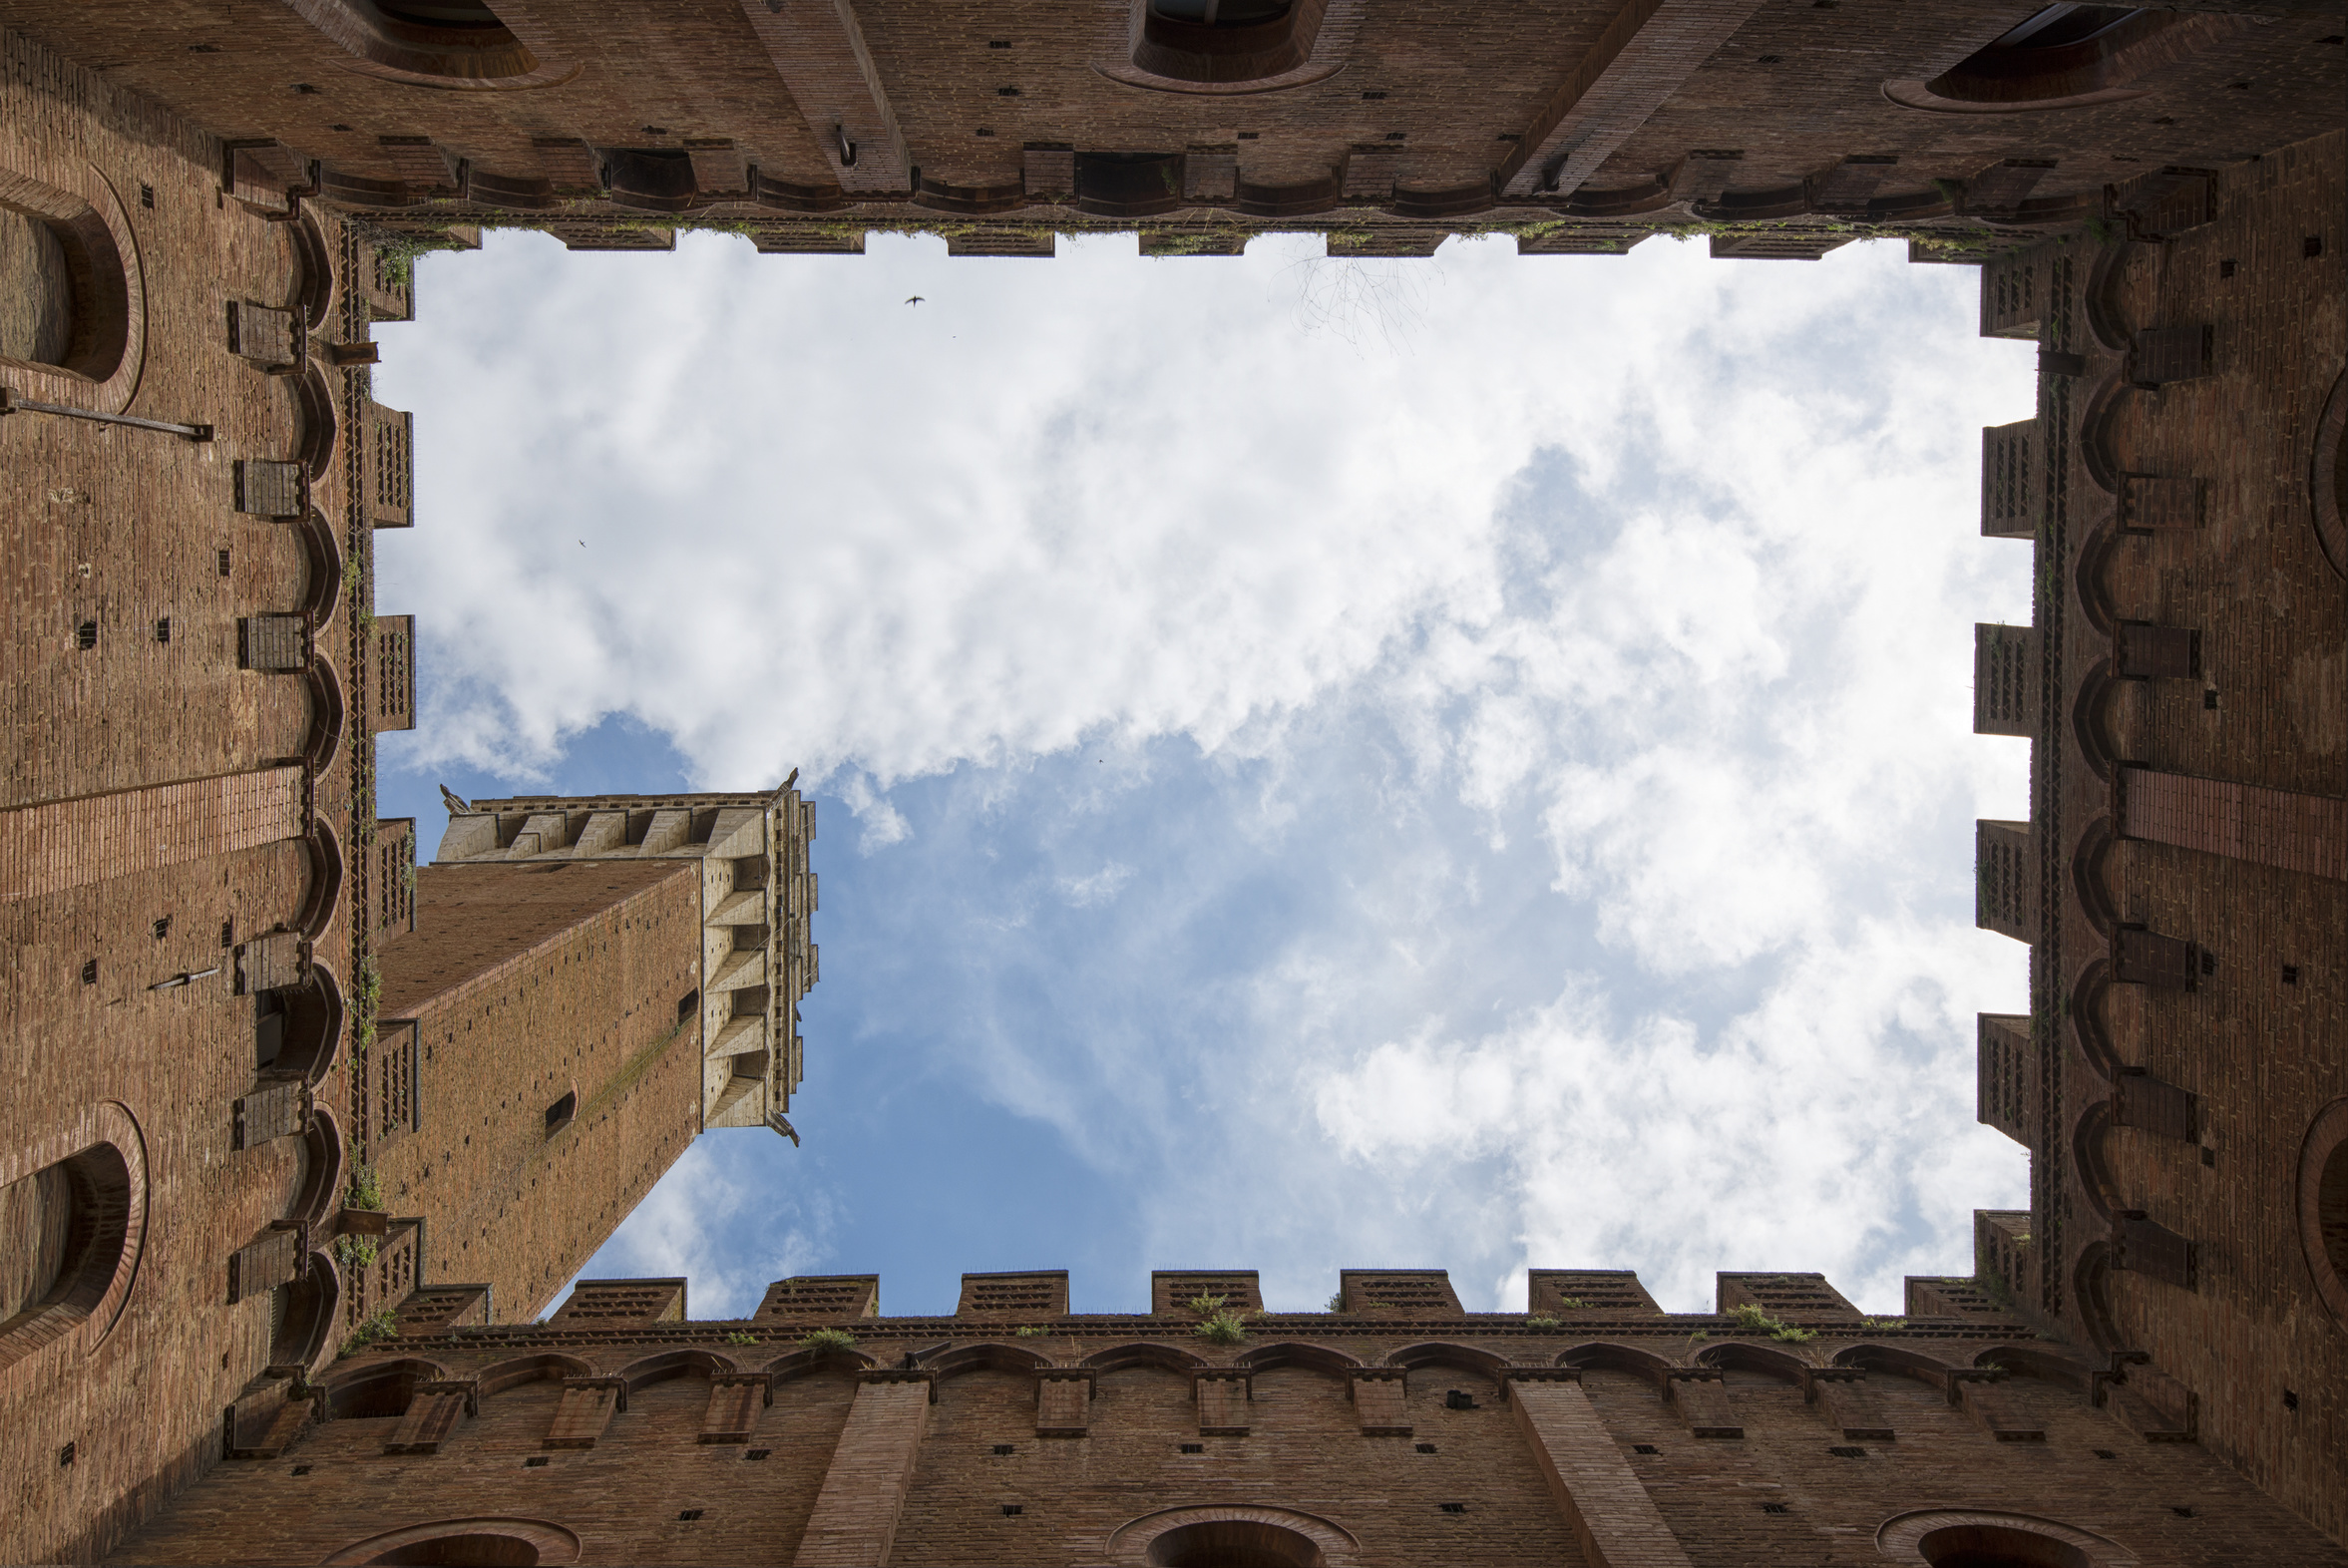 Copy of Siena tower view from below